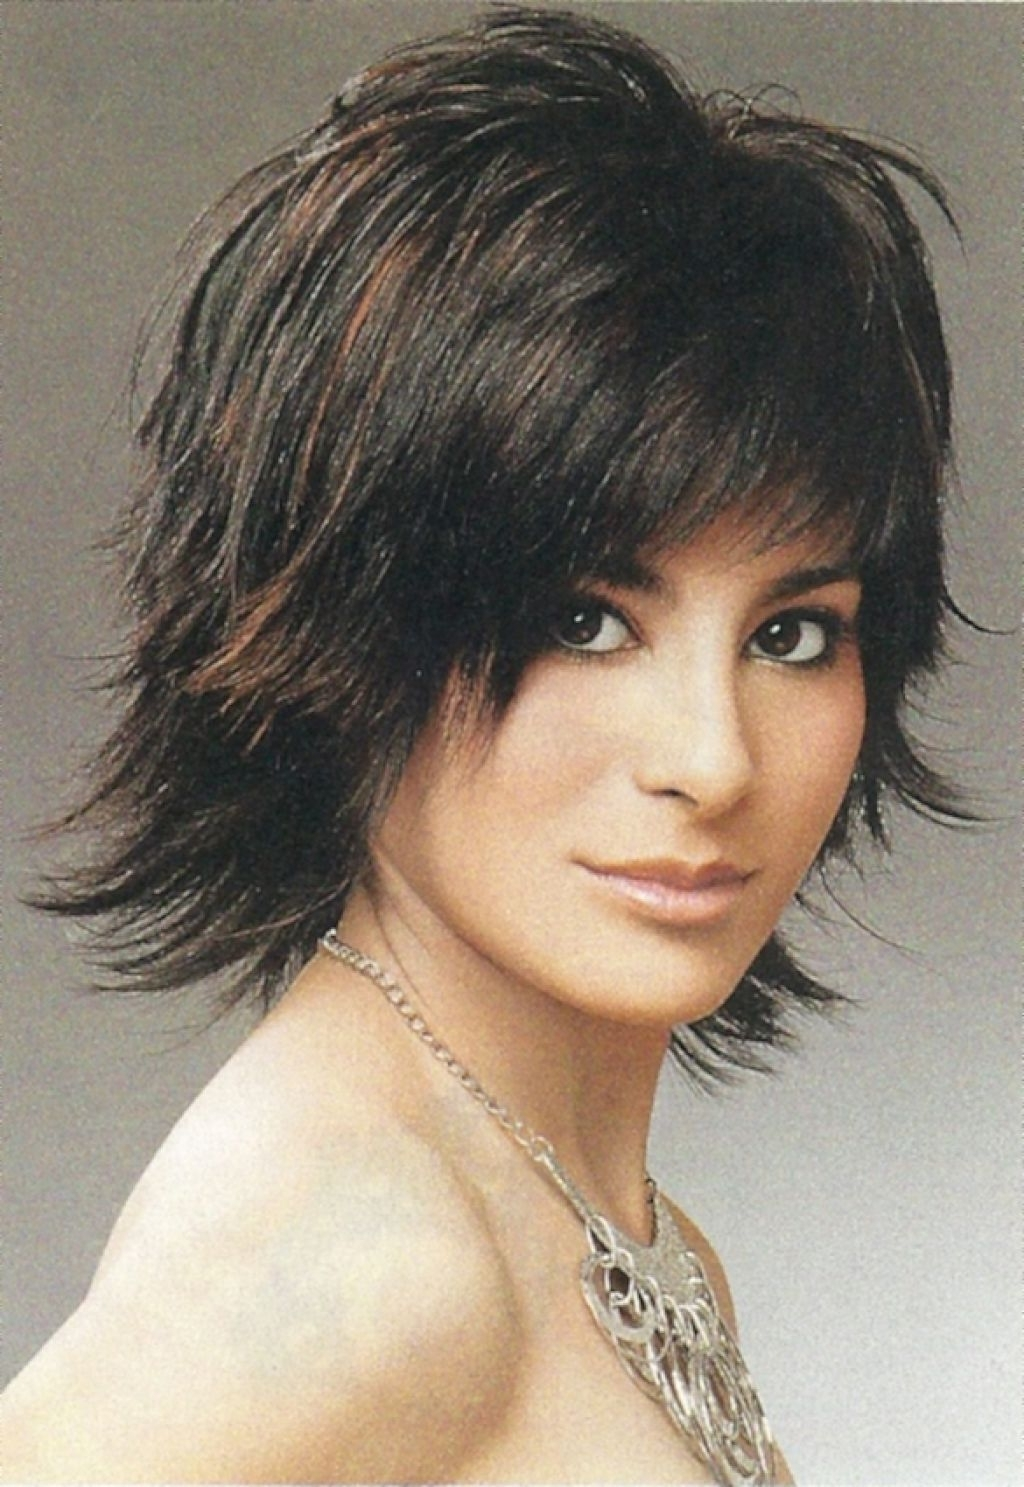 Messy Shaggy Hairstyles For Women (View 2 of 15)